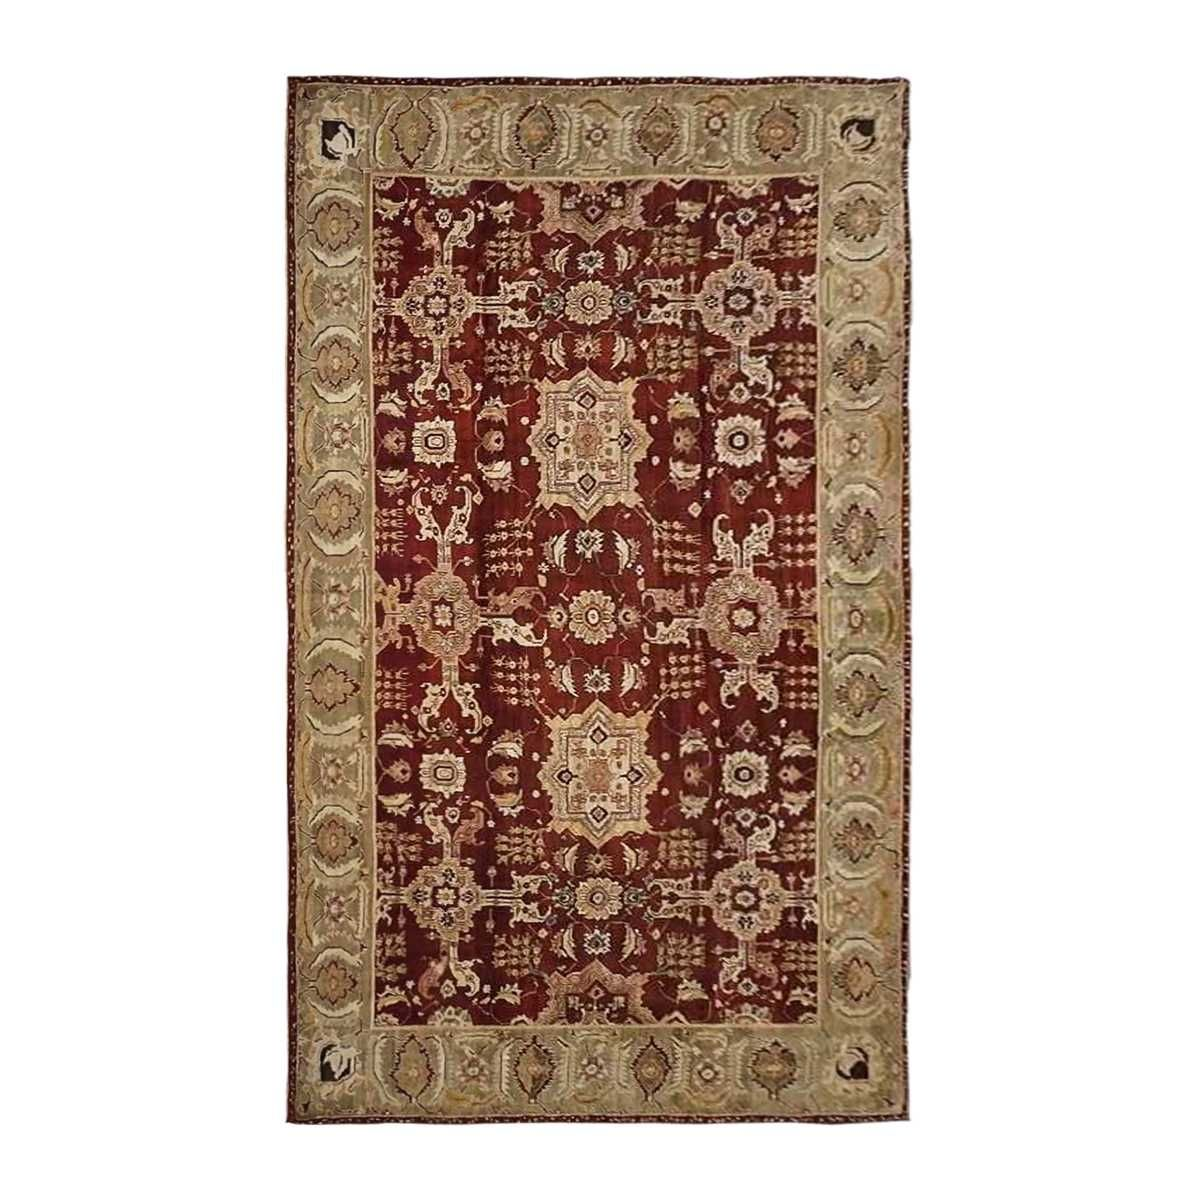 Hand Knotted Agra Rug 9 4 X 15 7 In 2020 Agra Rug Hand Knotted Rugs